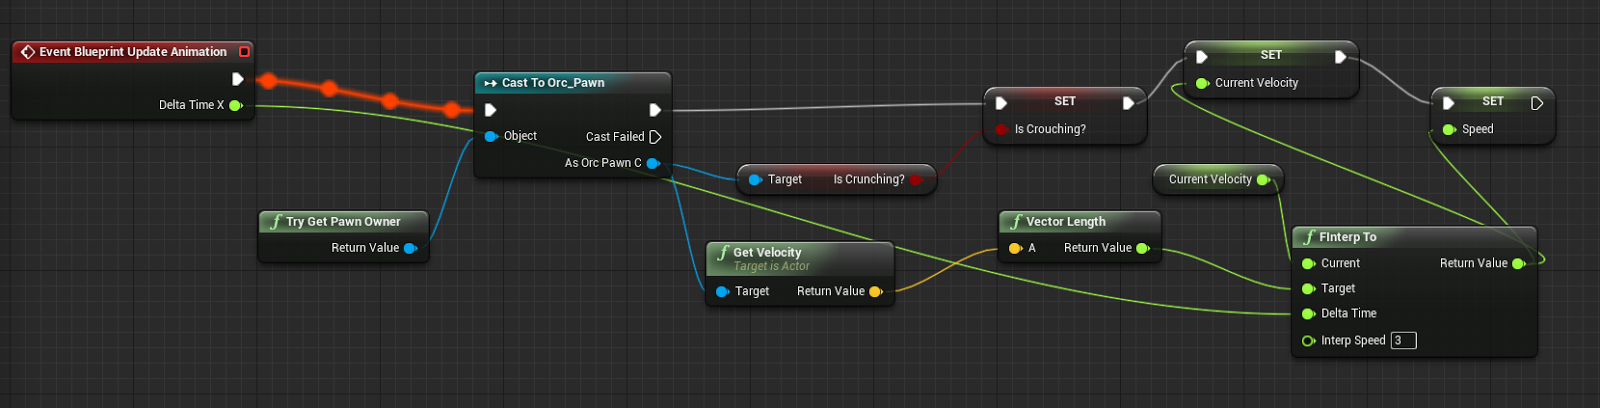 Shooter game tutorial in your event graph update those variables like here malvernweather Gallery